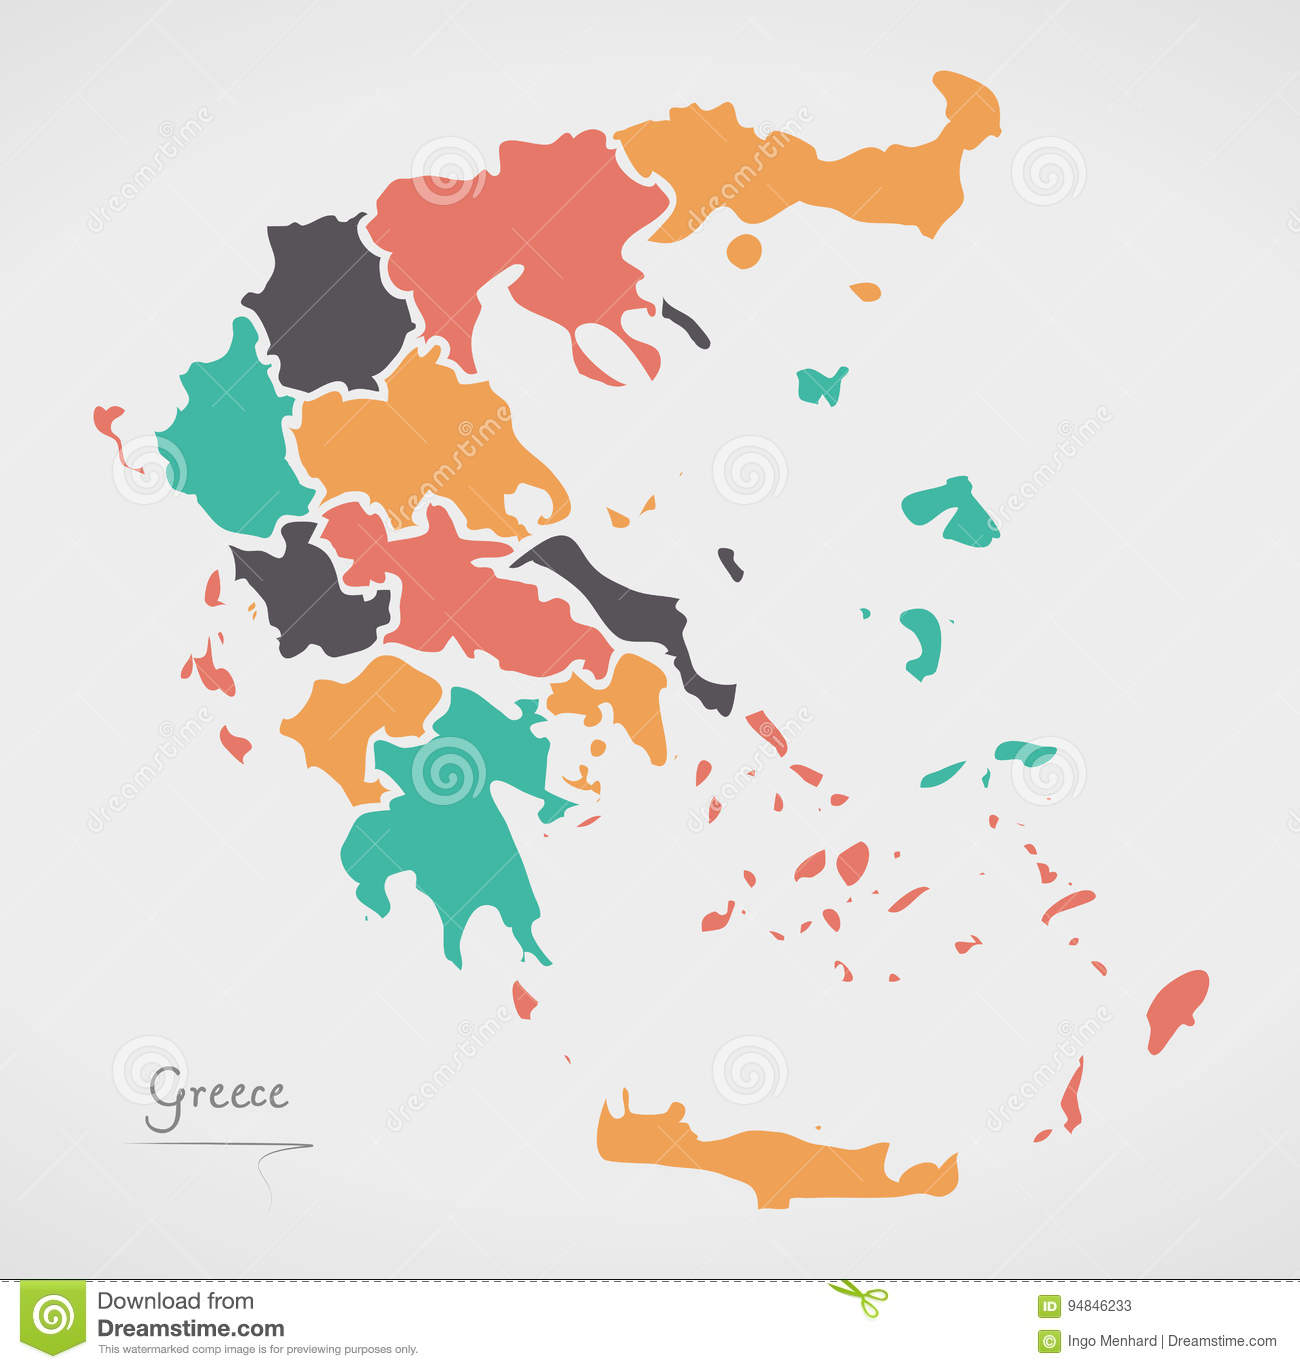 Greece map with states and modern round shapes stock vector download comp gumiabroncs Image collections